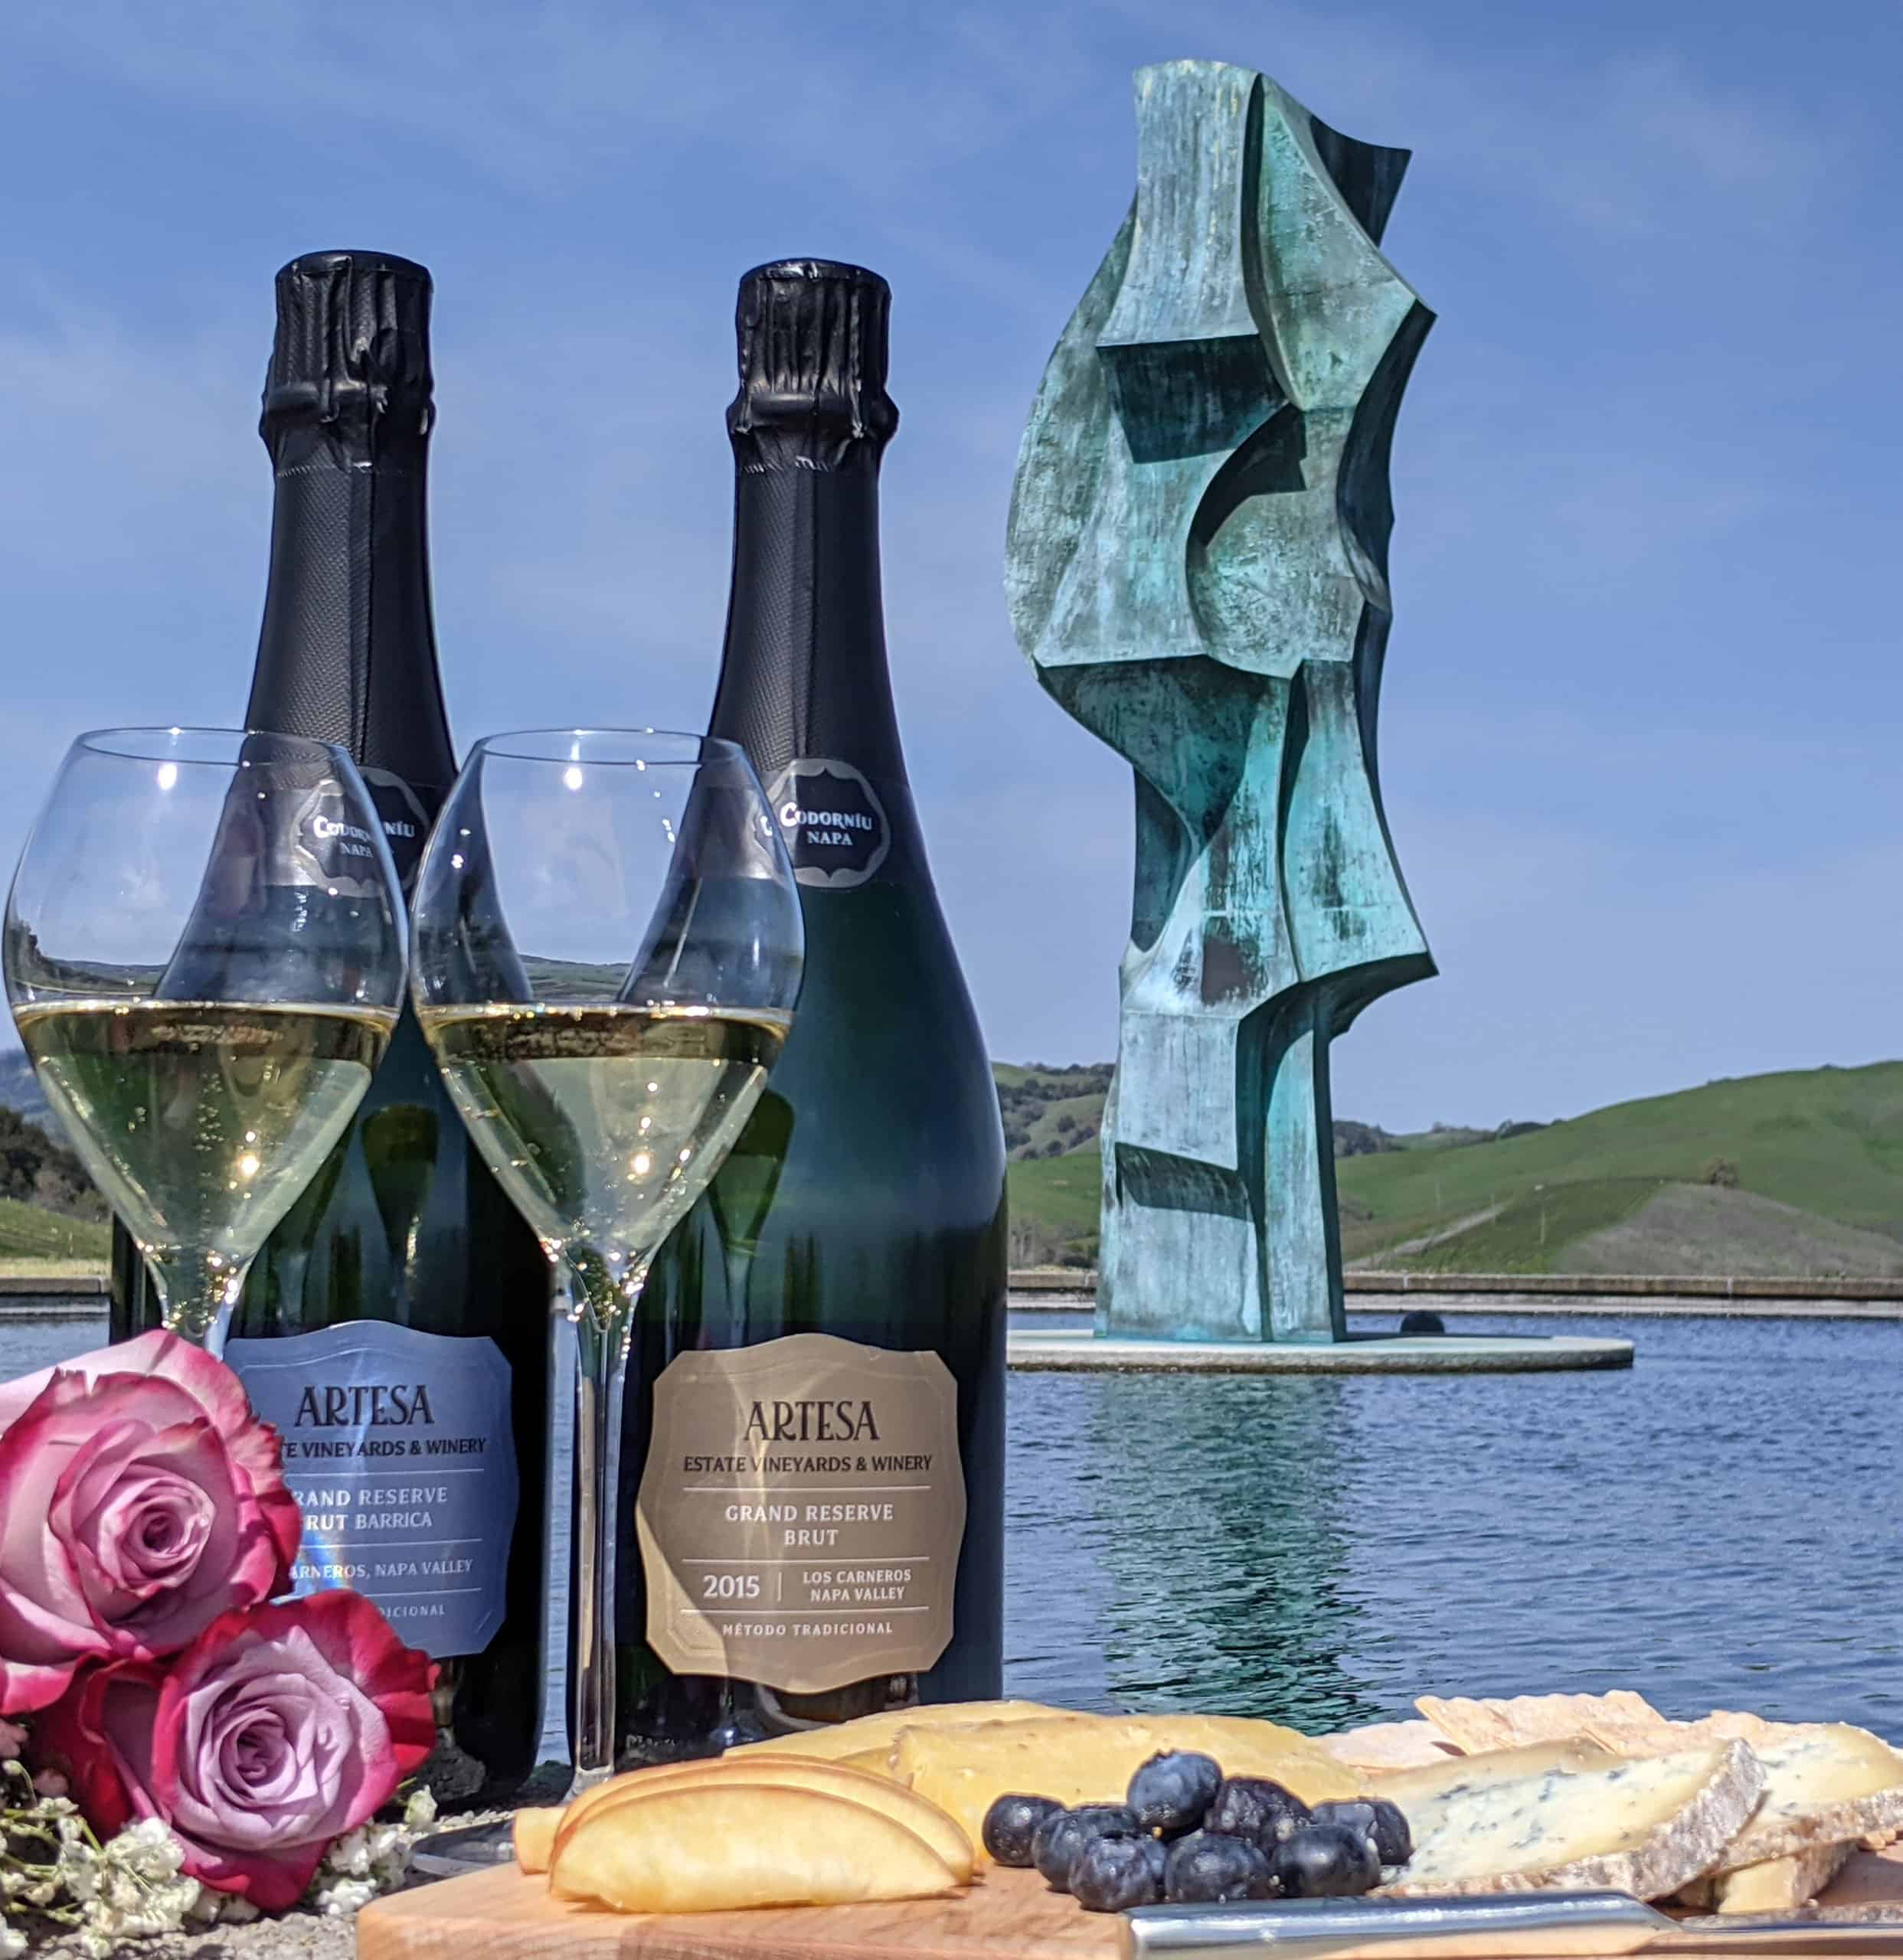 Artesa Winery Mother's Day Virtual Tasting Package - Sparkling Brut and Barrica with Cheese Plate